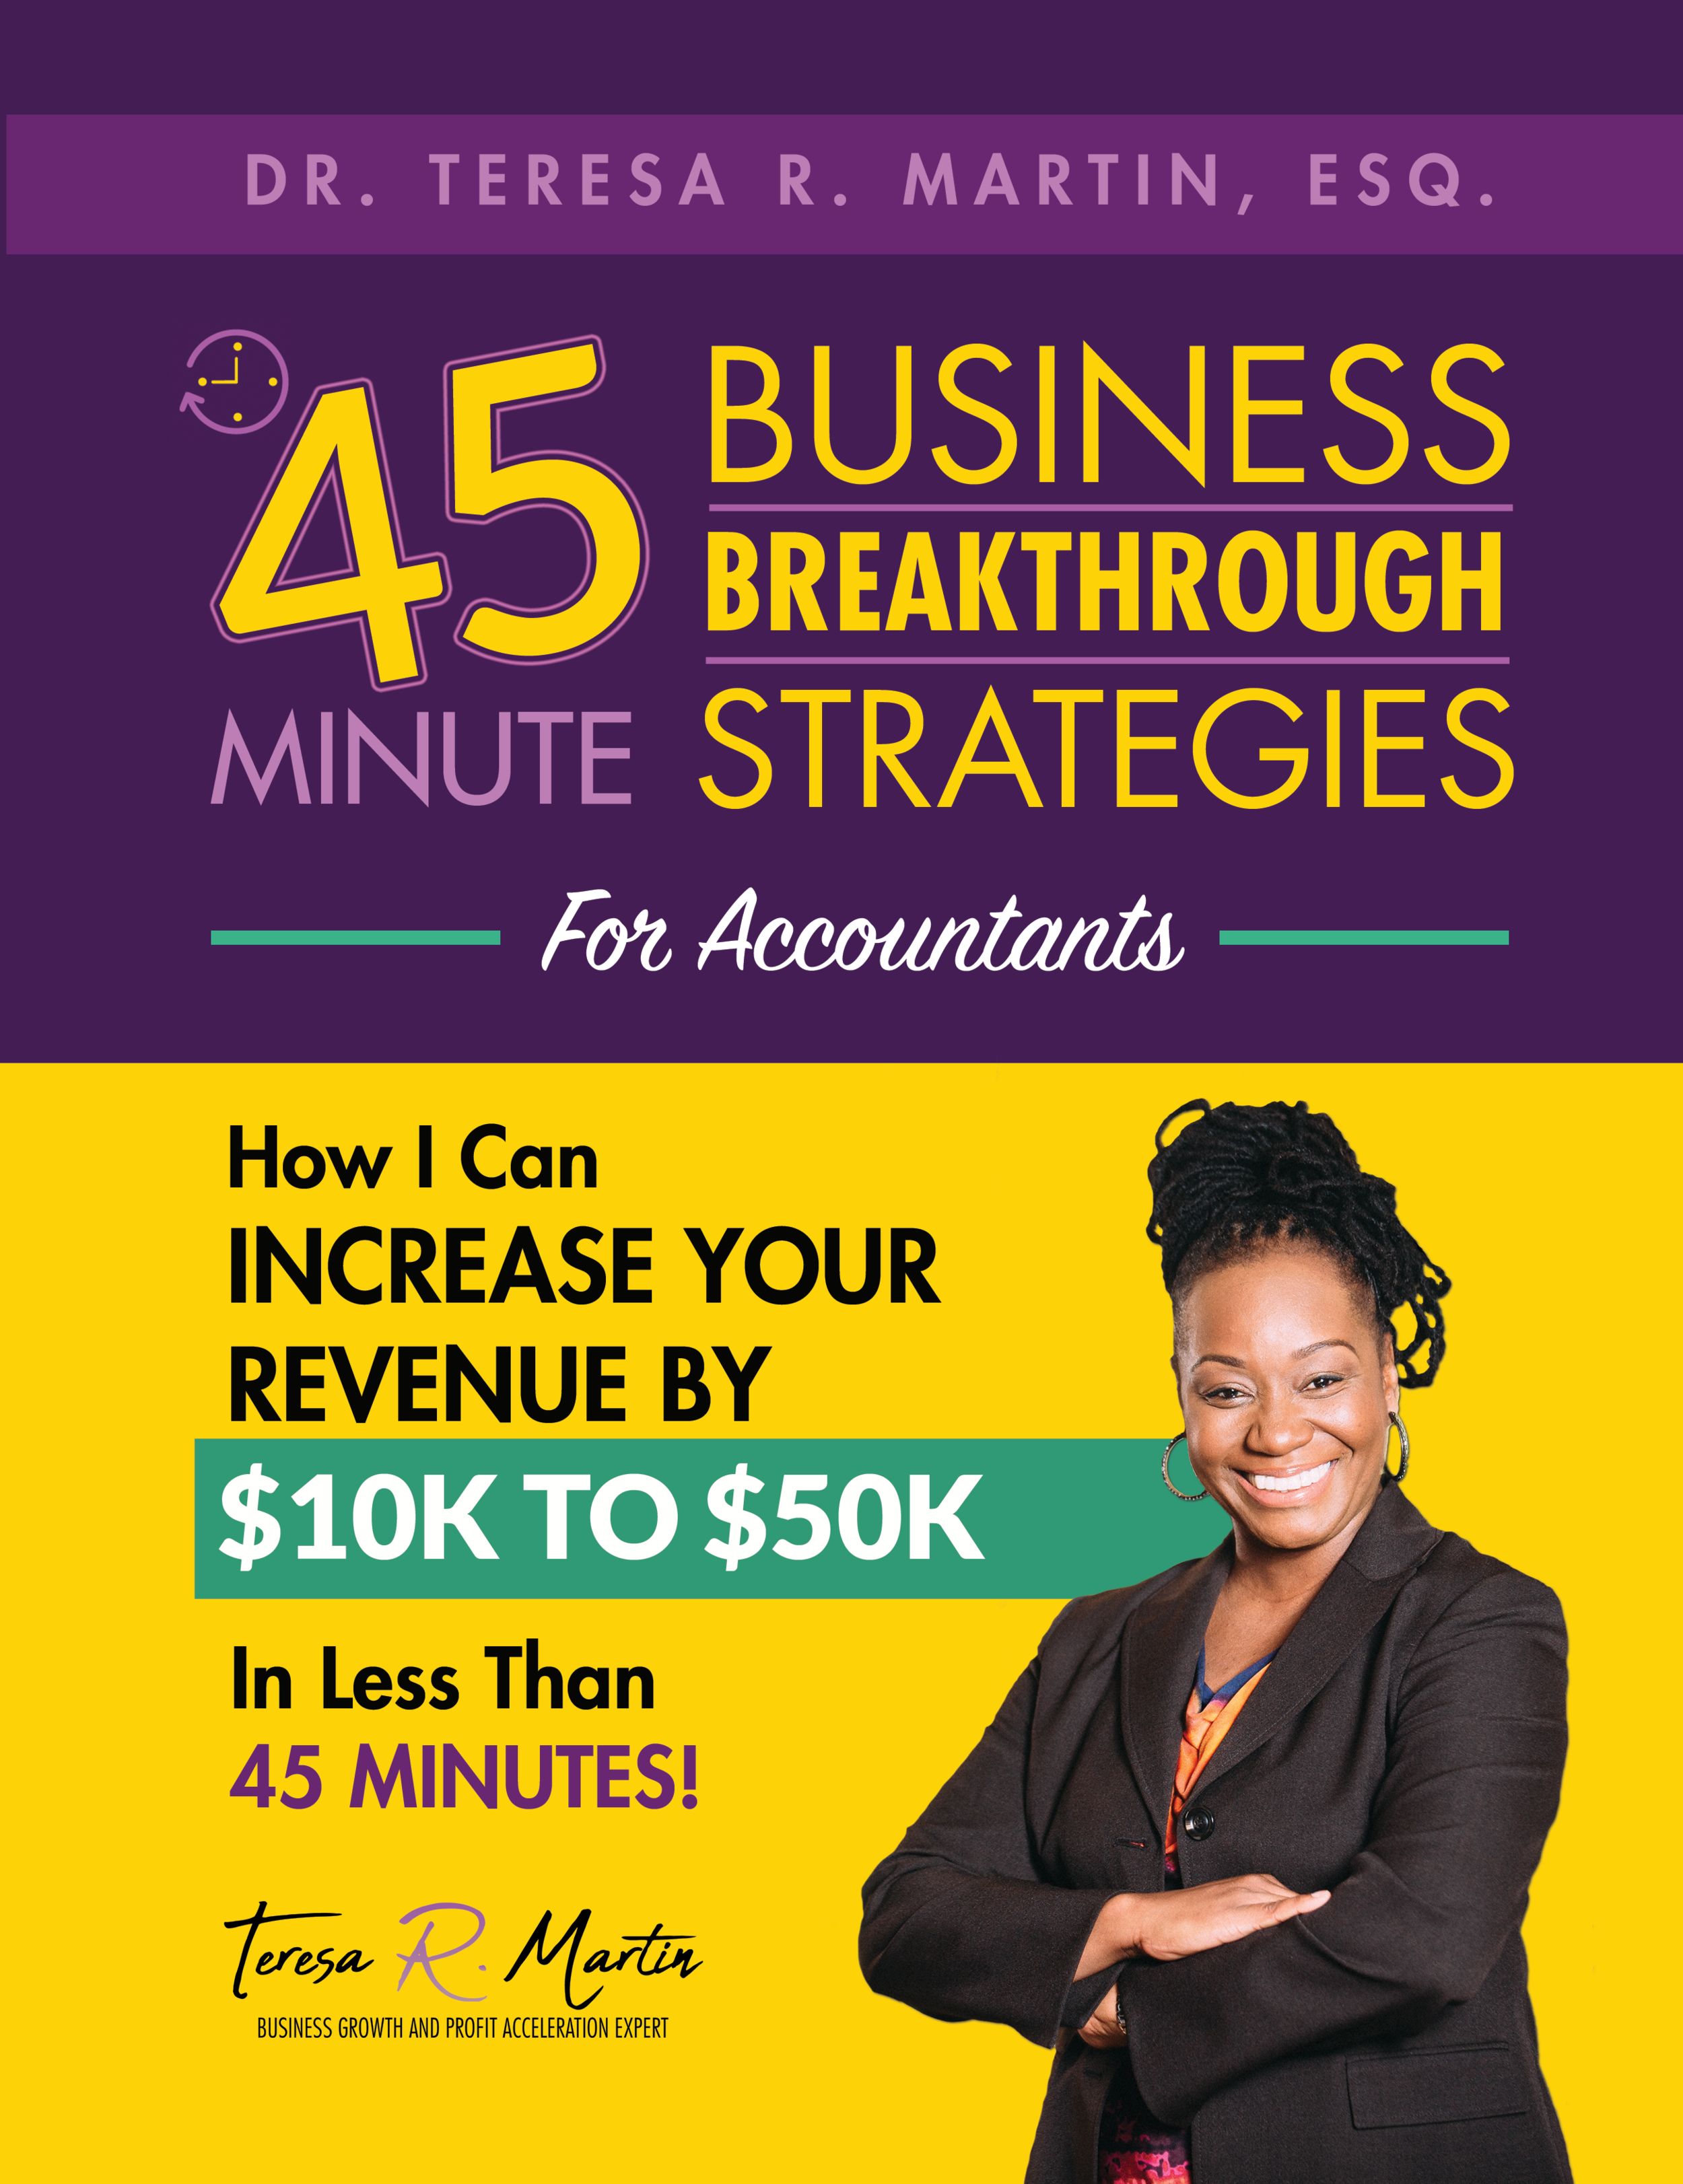 Business Breakthrough Strategies for Accountants